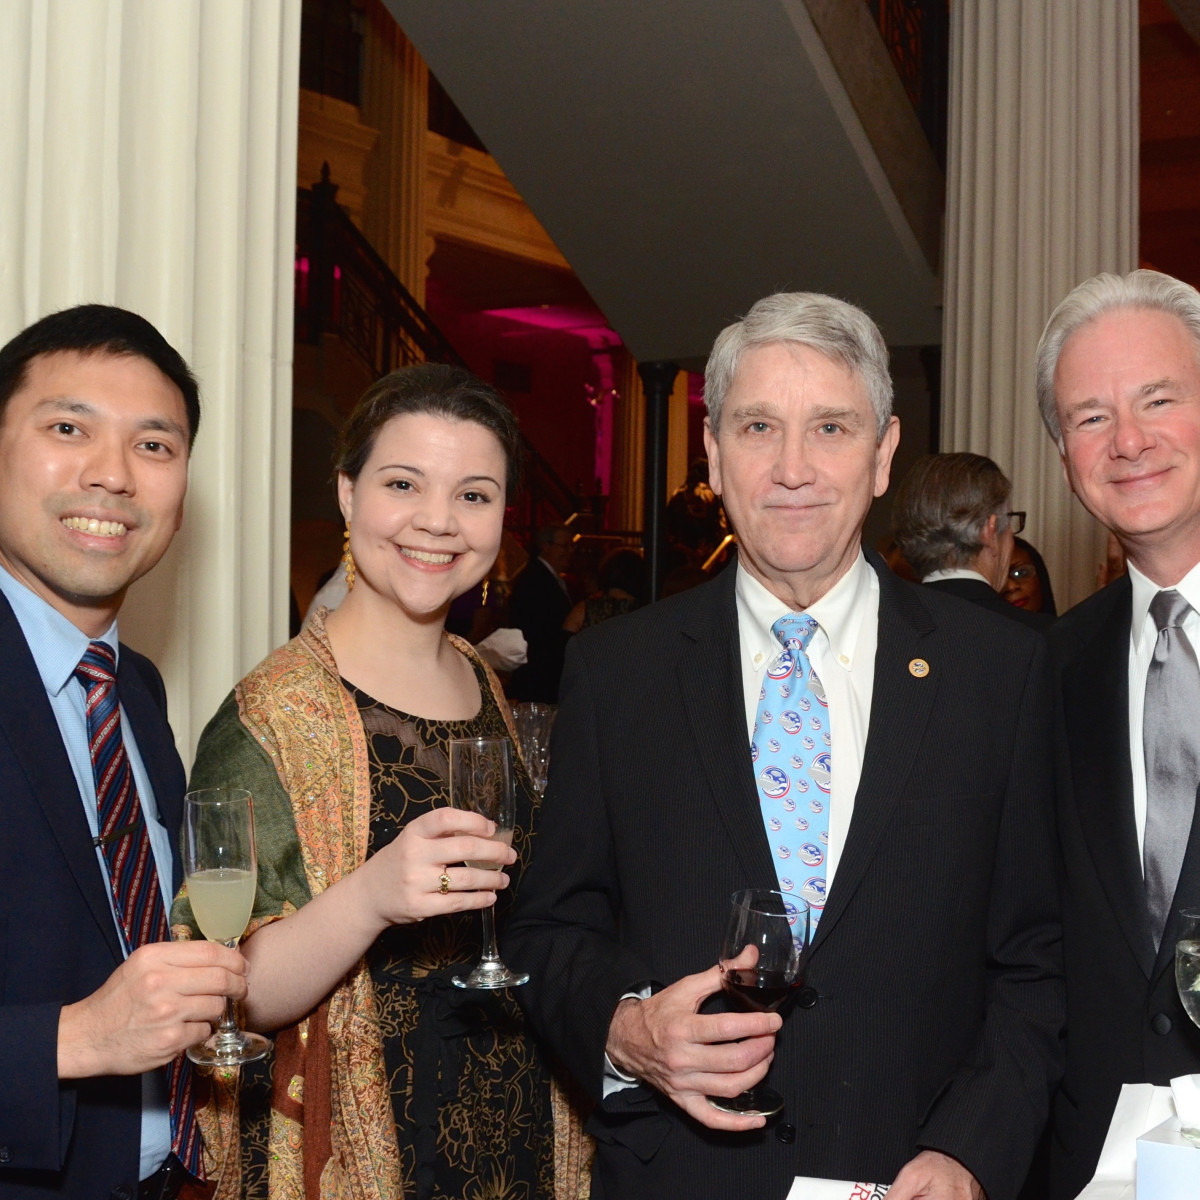 Children at Risk Gala, 4/2016, Wilson Lam, Claire Bocchini, Don Hartsell, and Stratton Horres.